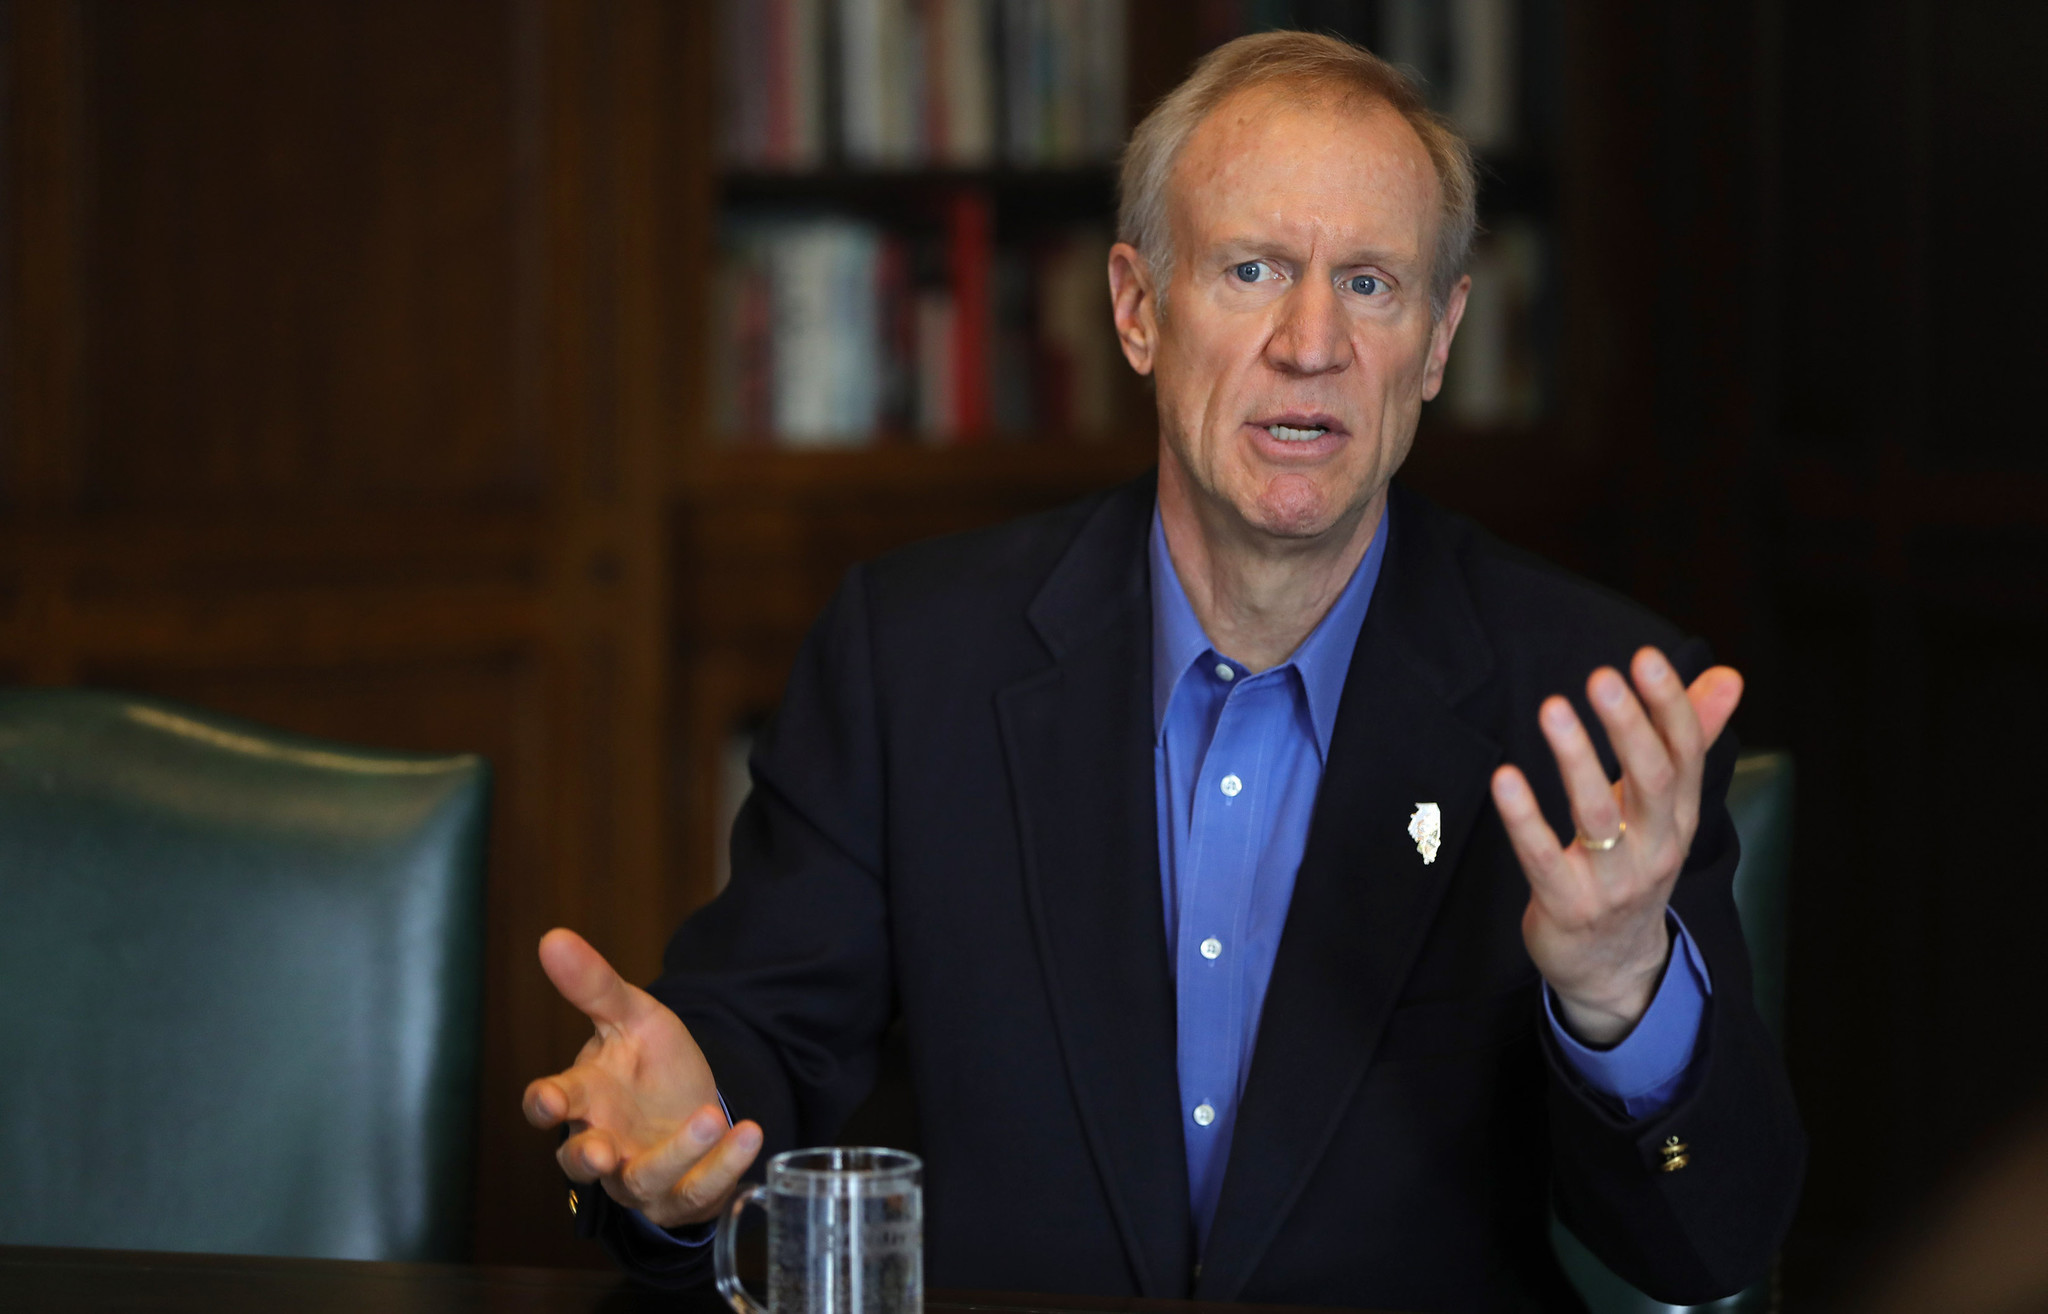 Governor Rauner Calls Virginia Car Attack Terror